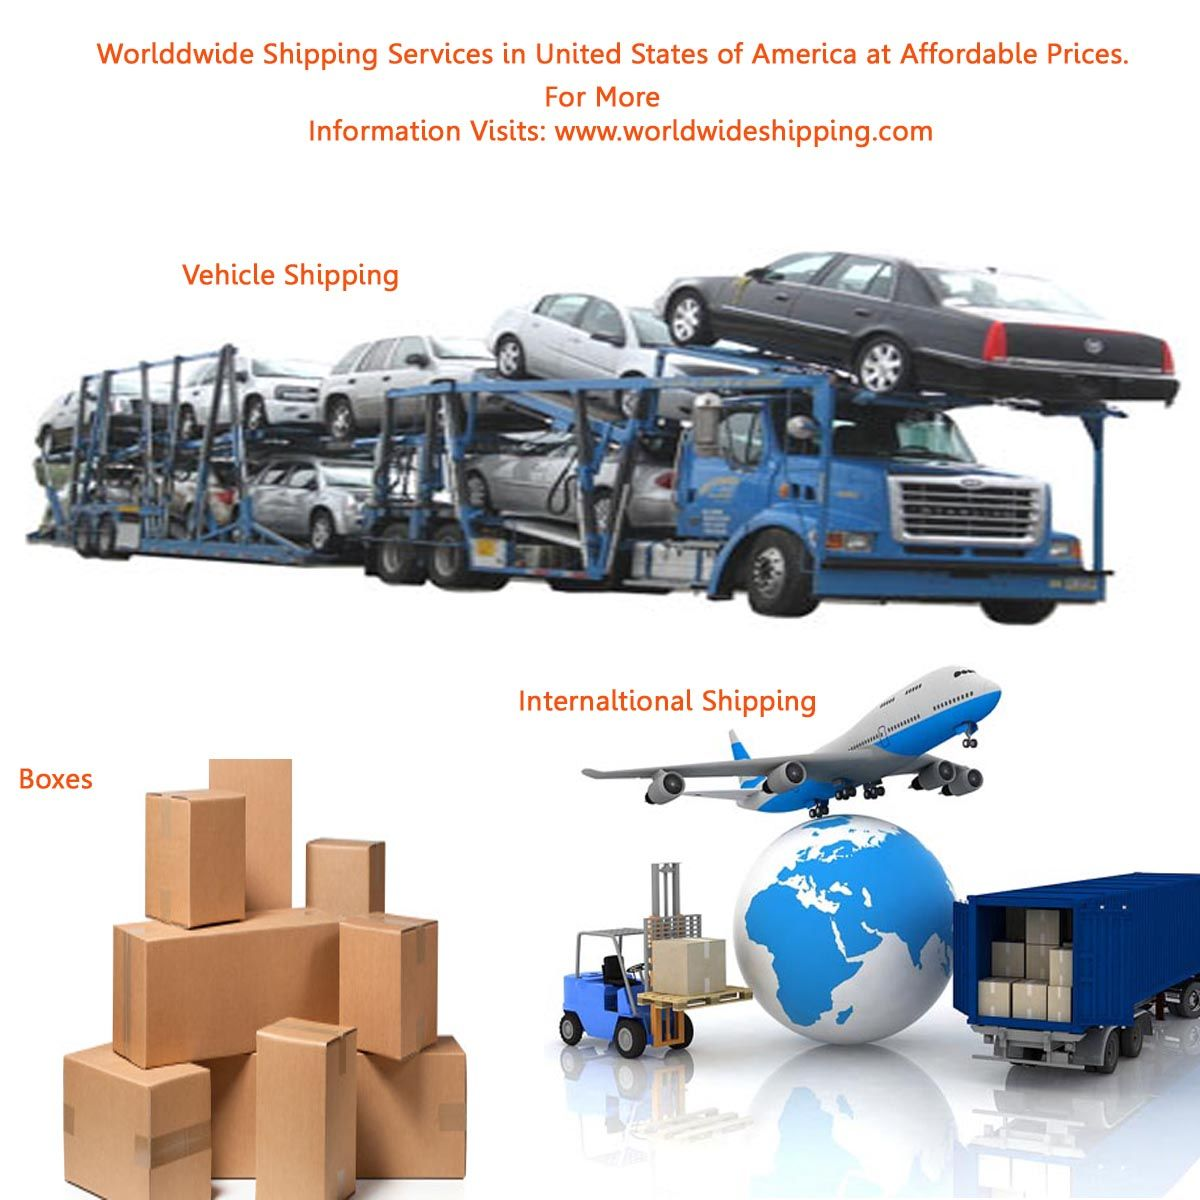 Worldwide Shipping is a leading international shipping company in United States of America. It is providing completely secure worldwide shipping services at affordable prices. Its include container, cargo, vehicle, boxes, air freight and packing/creating services.